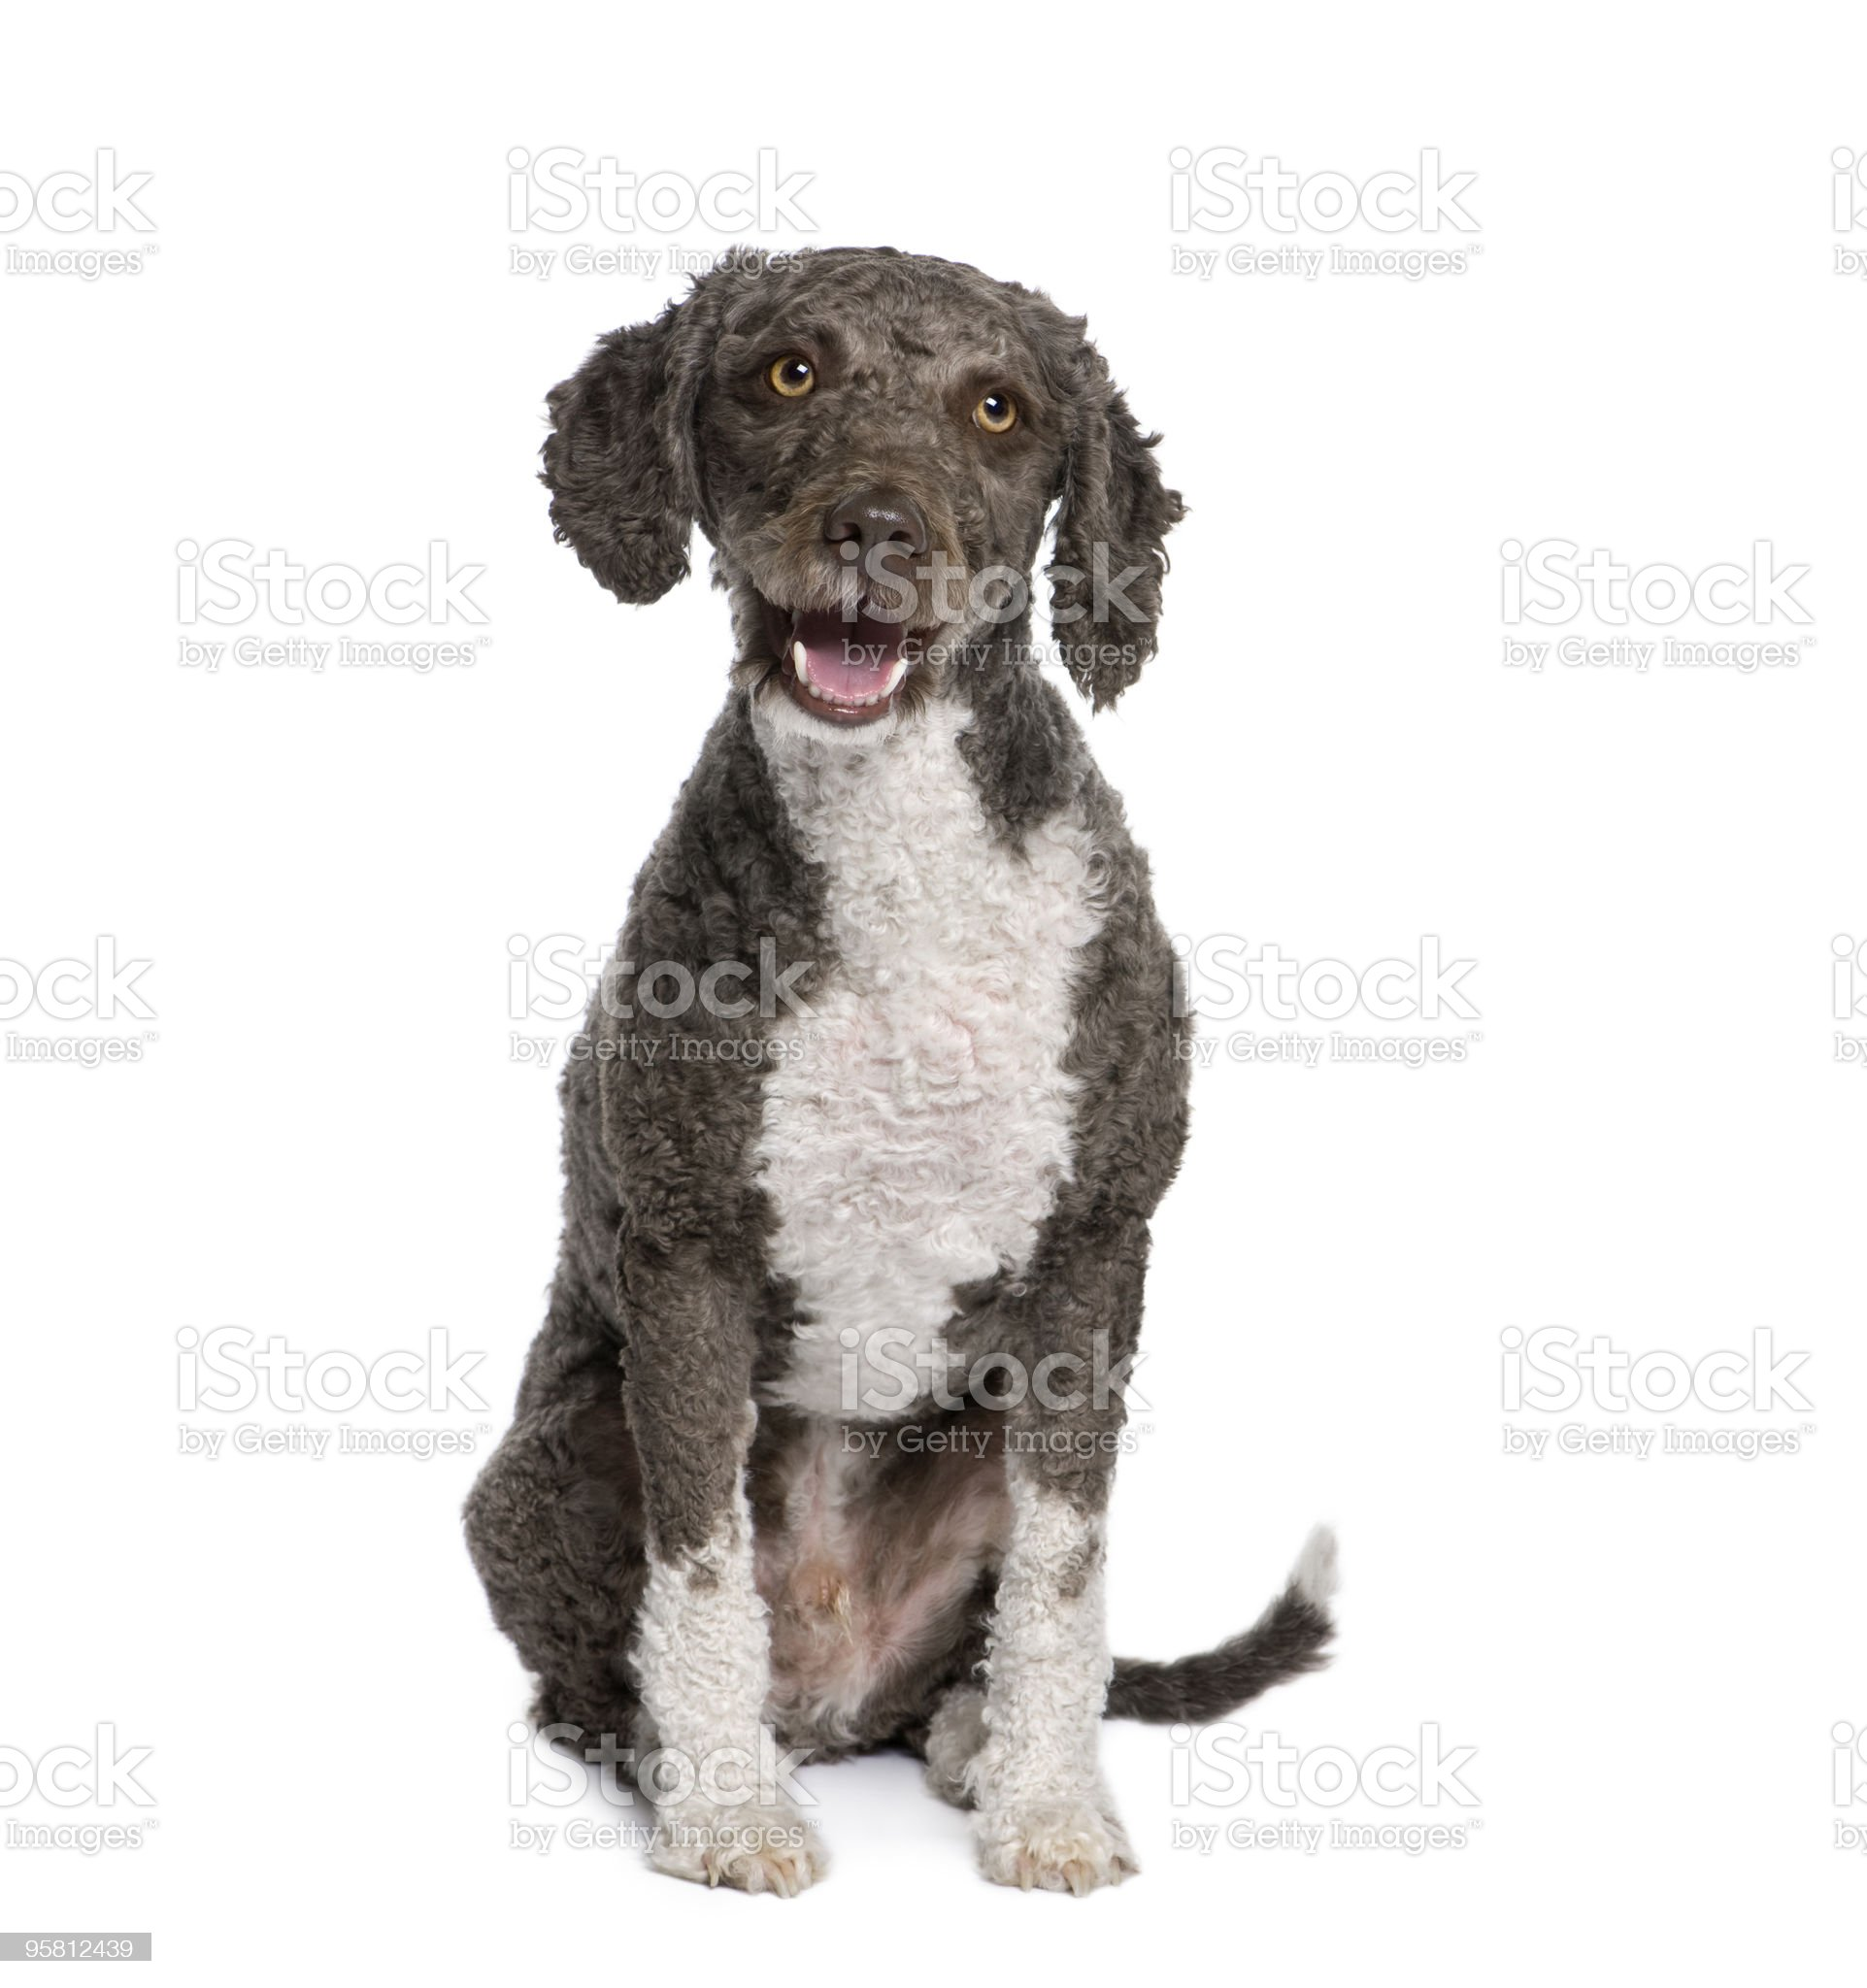 Spanish water spaniel dog sitting in front of white background royalty-free stock photo